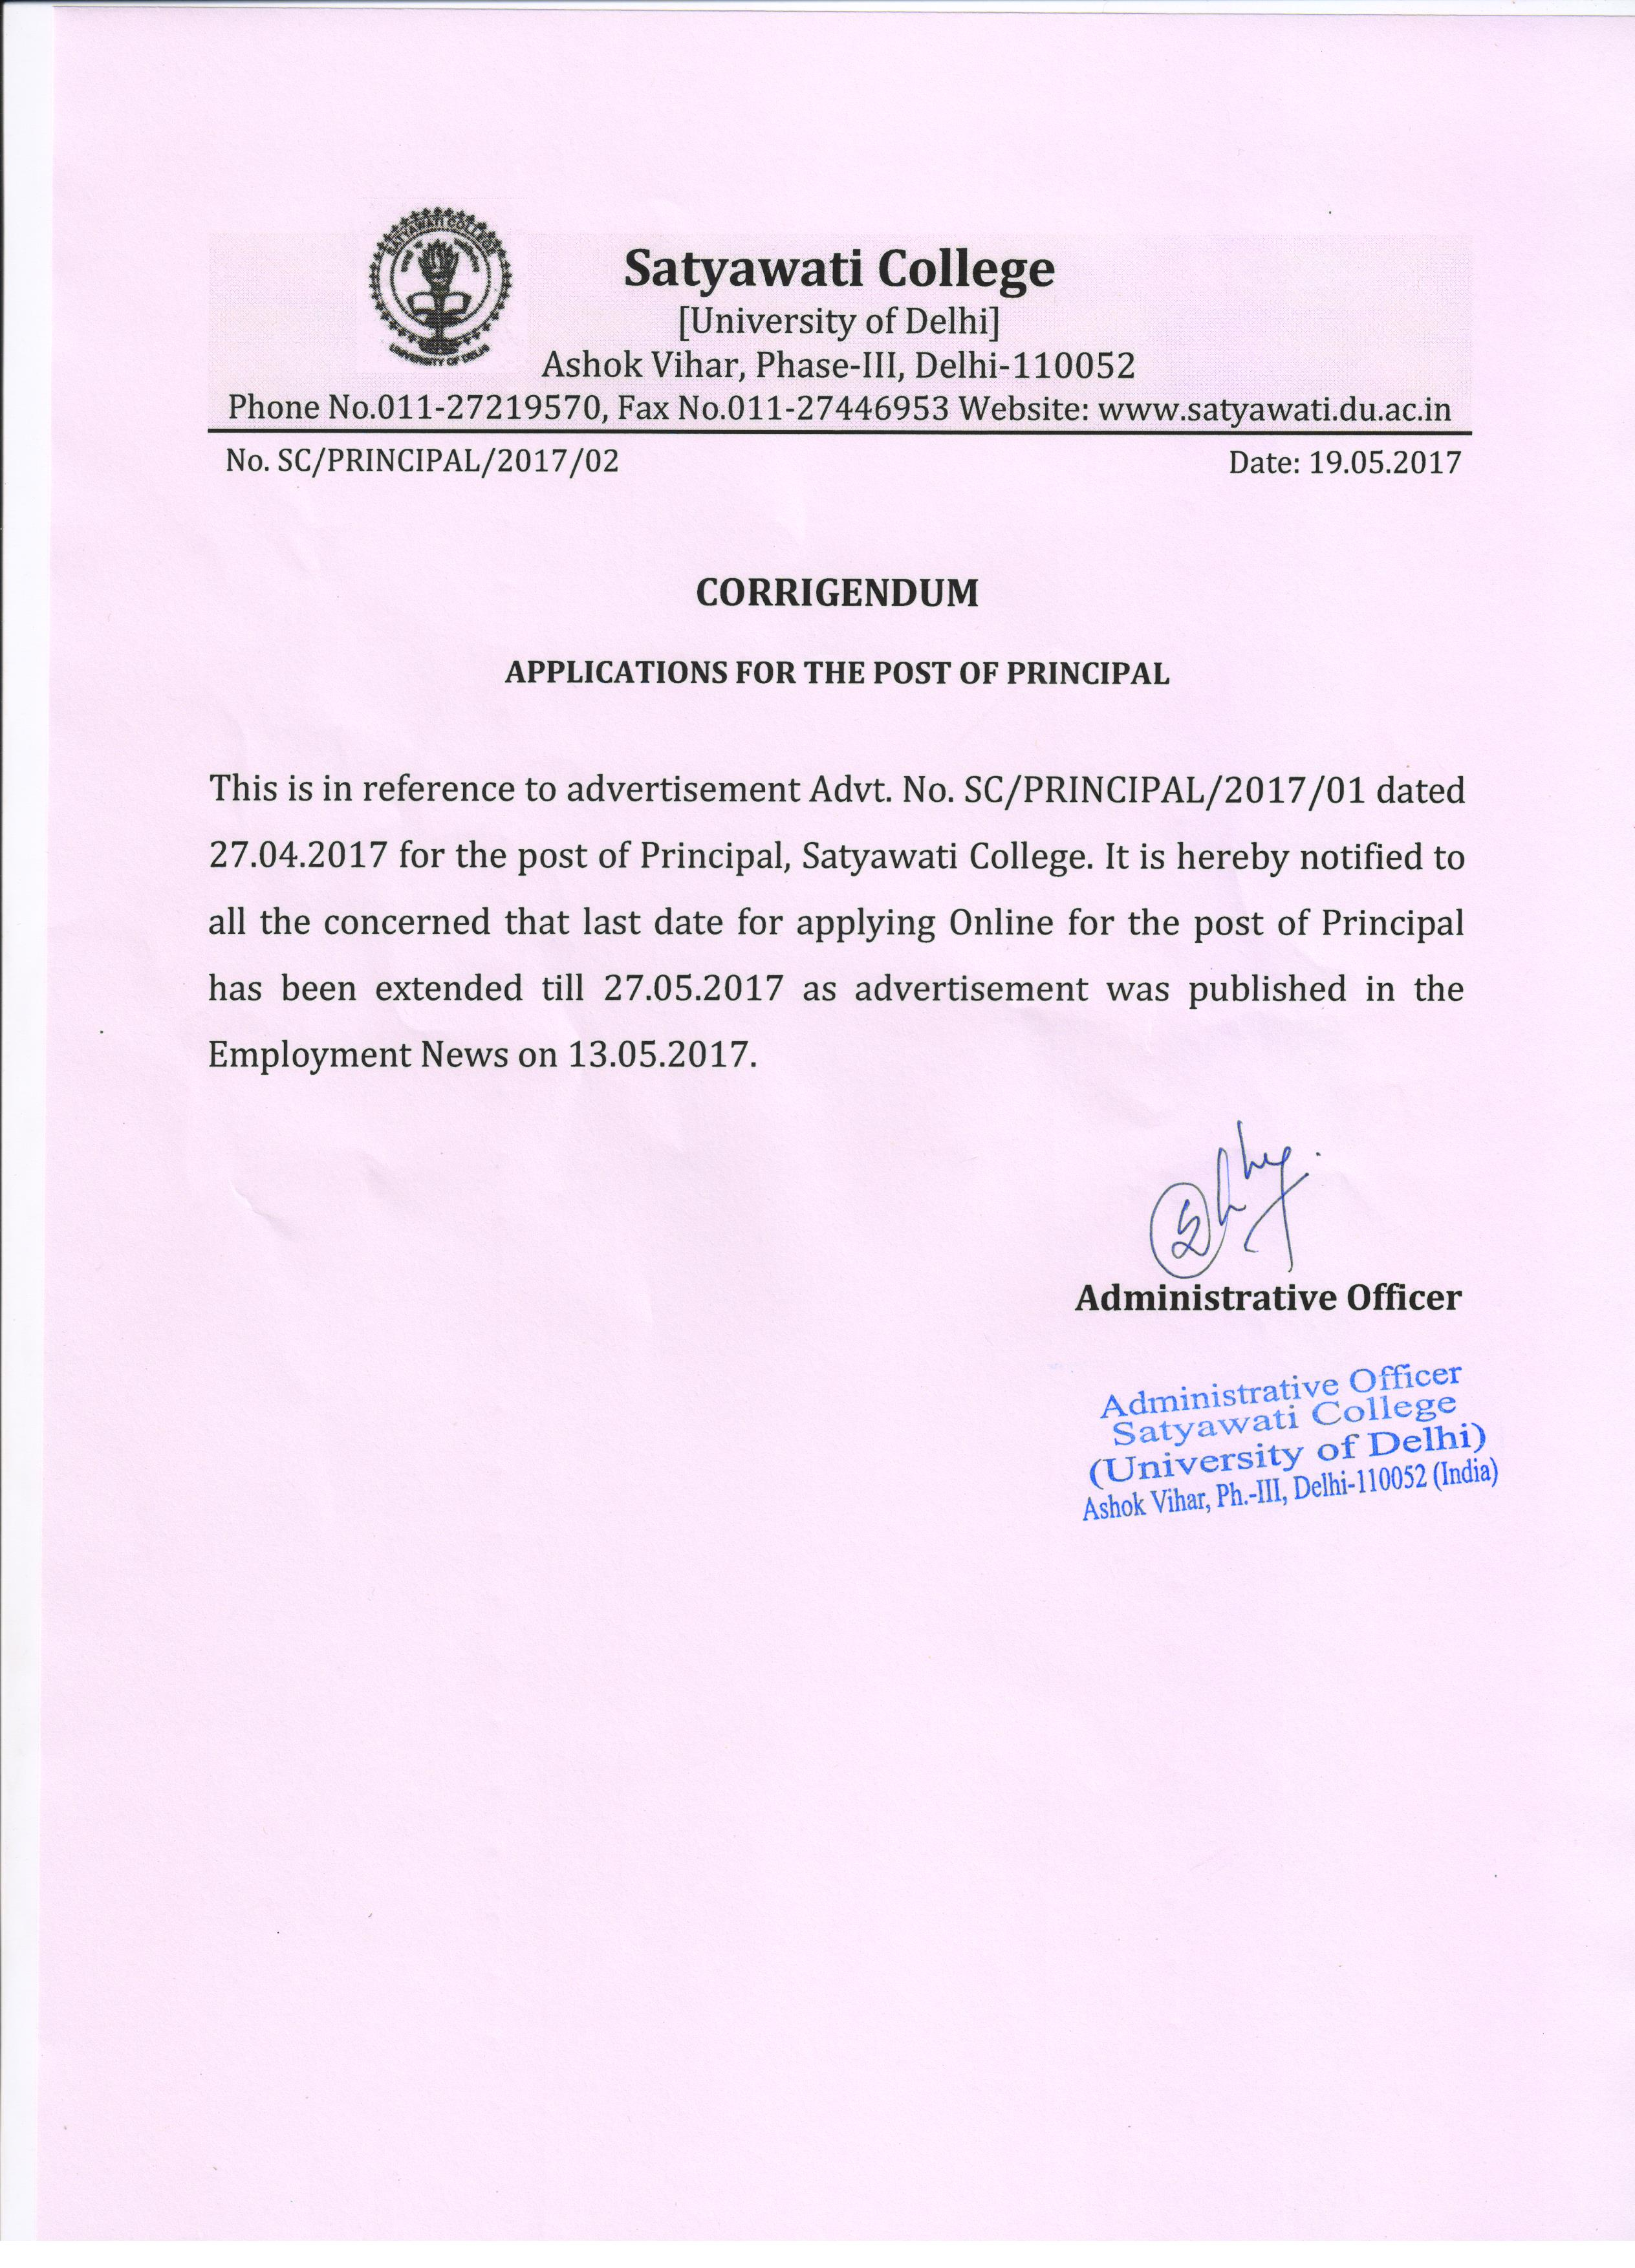 corrigendumlast date for applying online for the post of principal has been extended